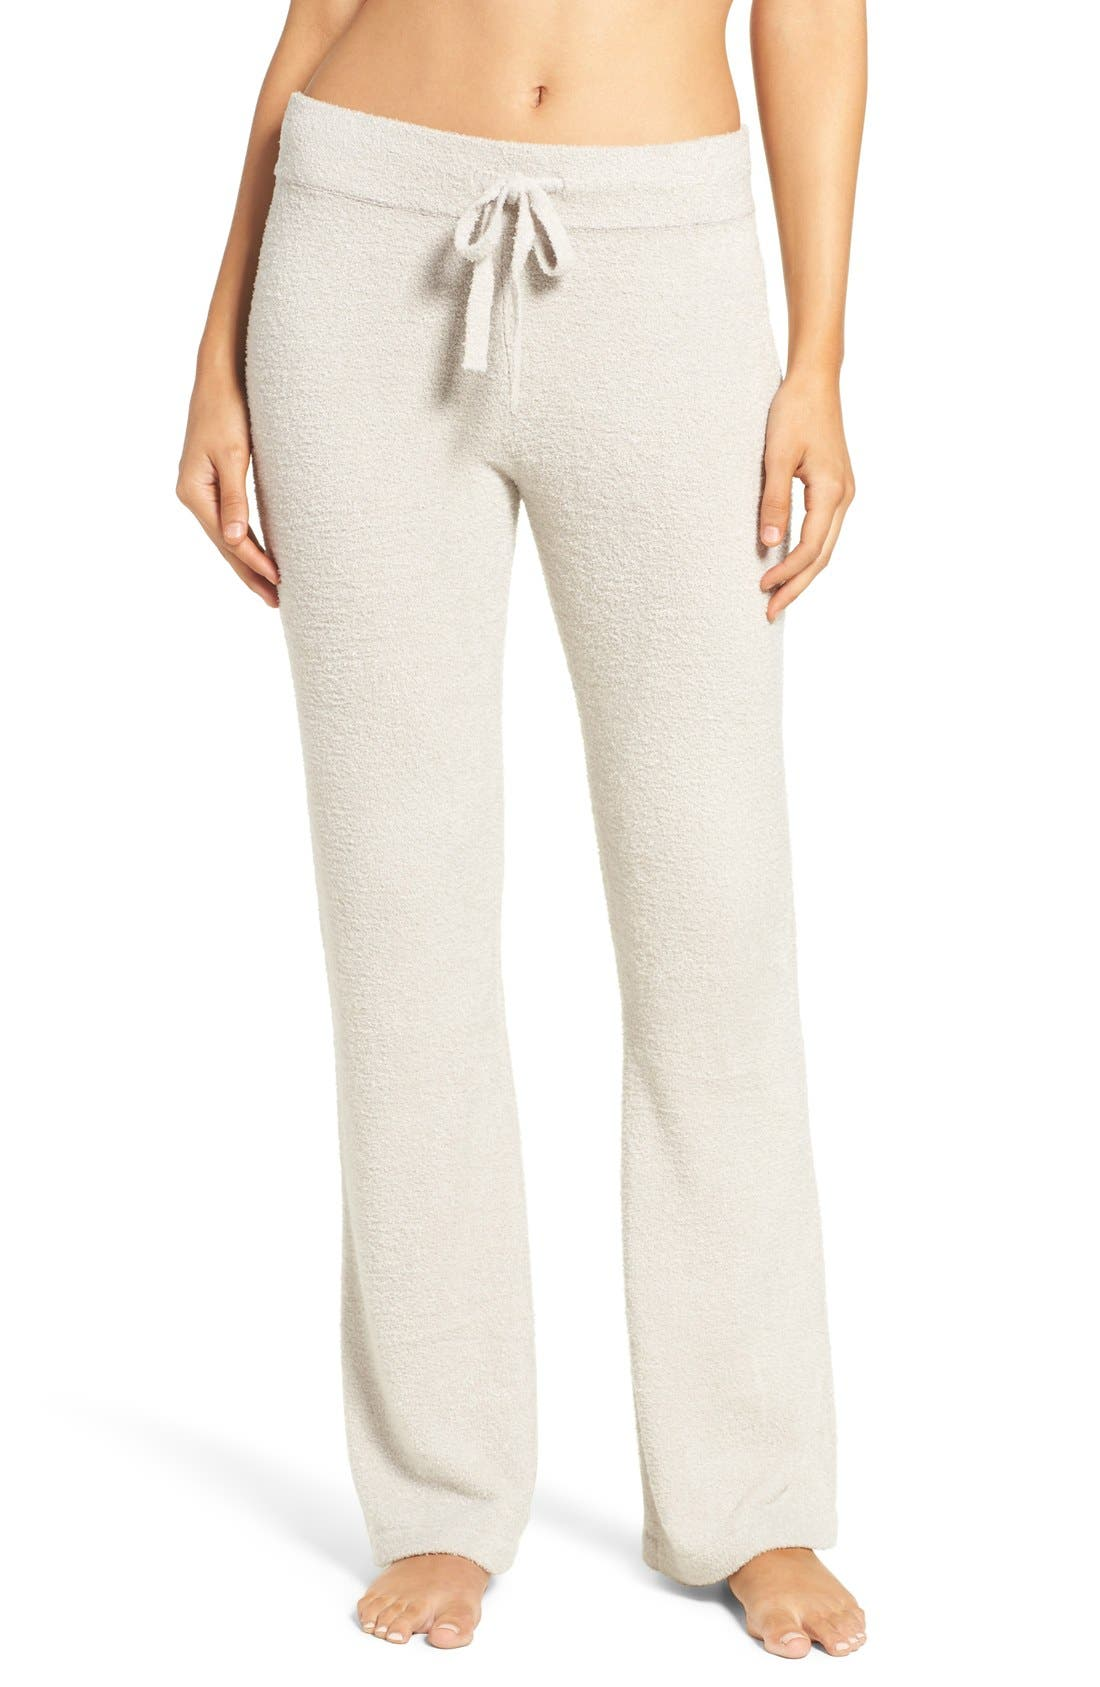 Alternate Image 1 Selected - Barefoot Dreams® Cozychic Lite® Lounge Pants